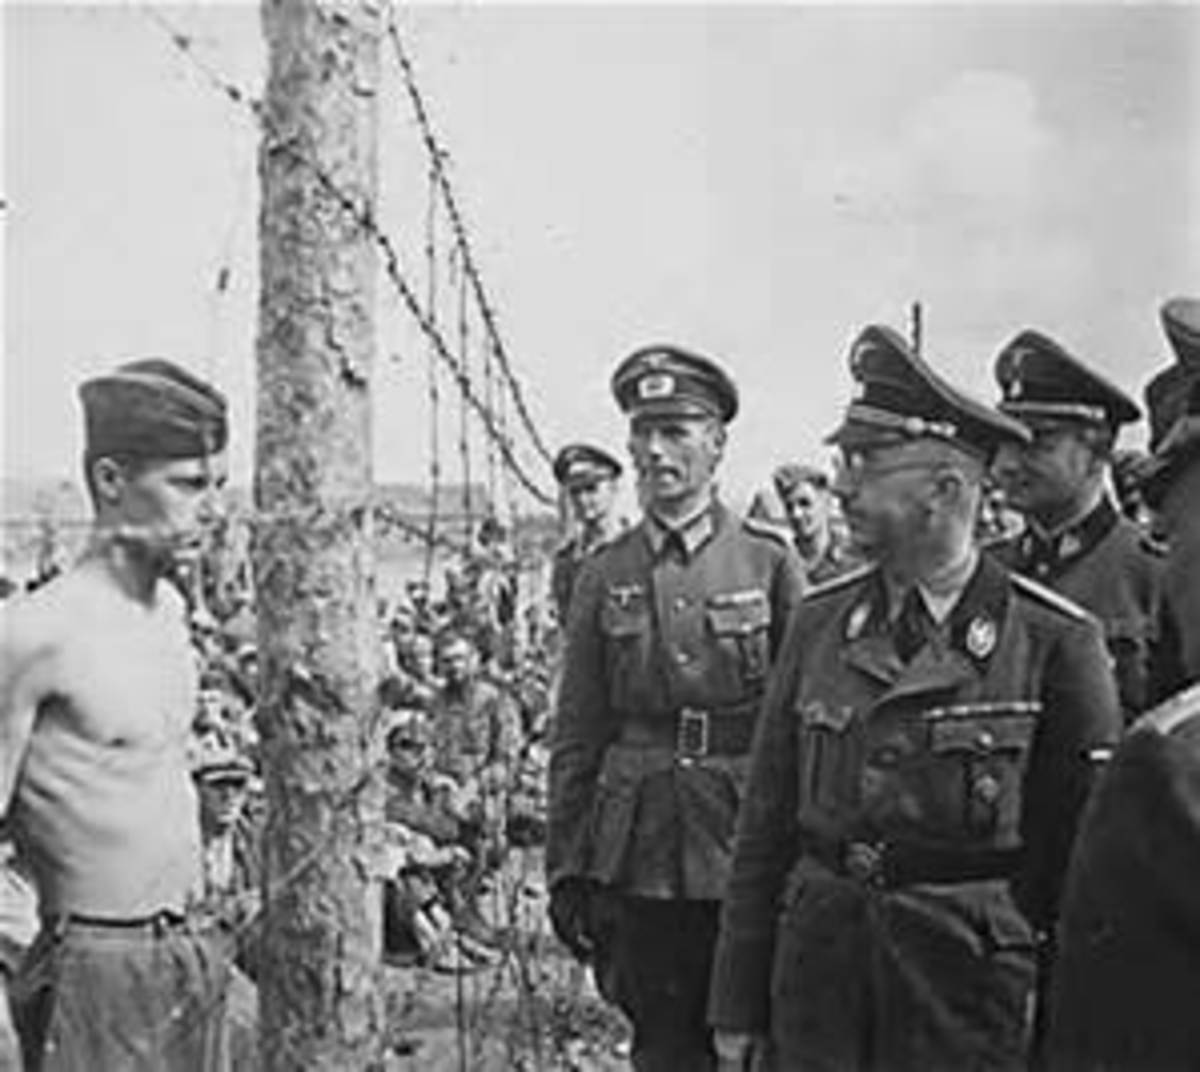 British soldier showing complete contempt for Himmler